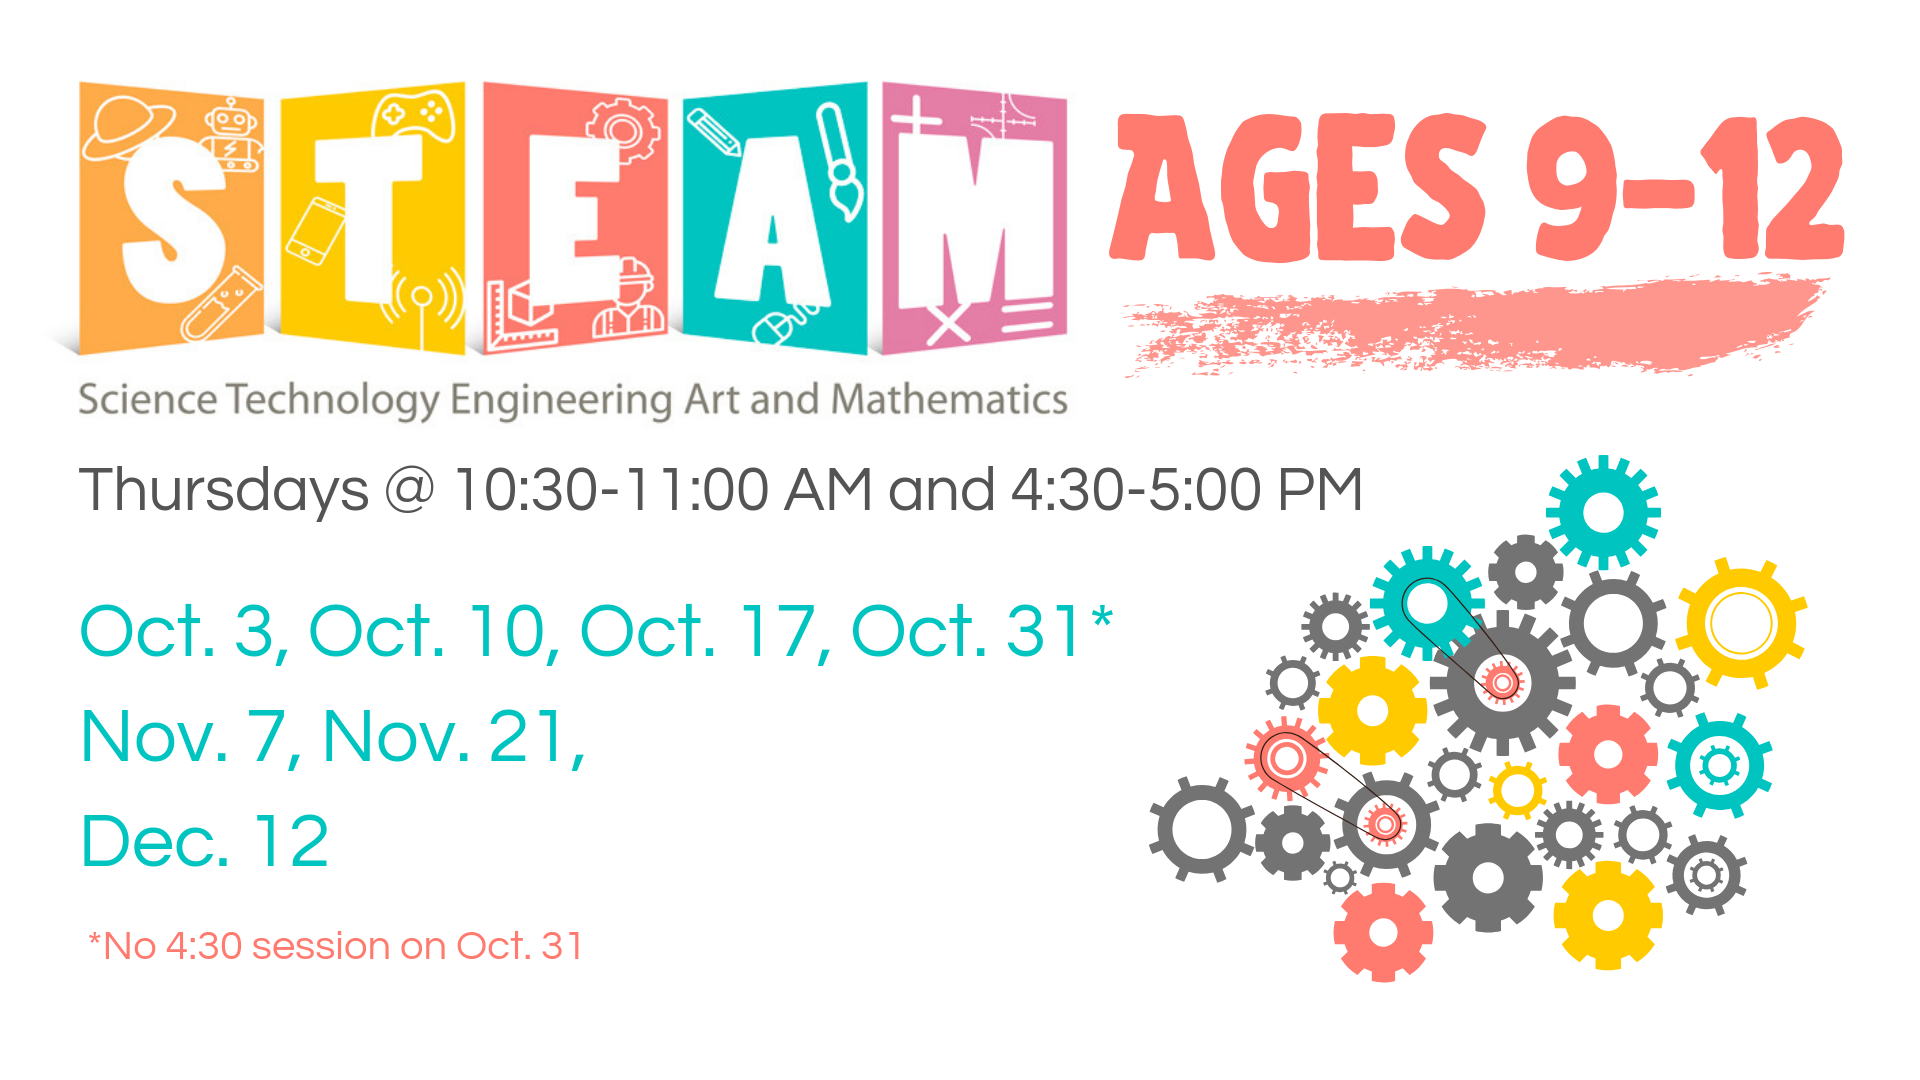 STEAM 9-12 yr. olds @ Youth Services Department